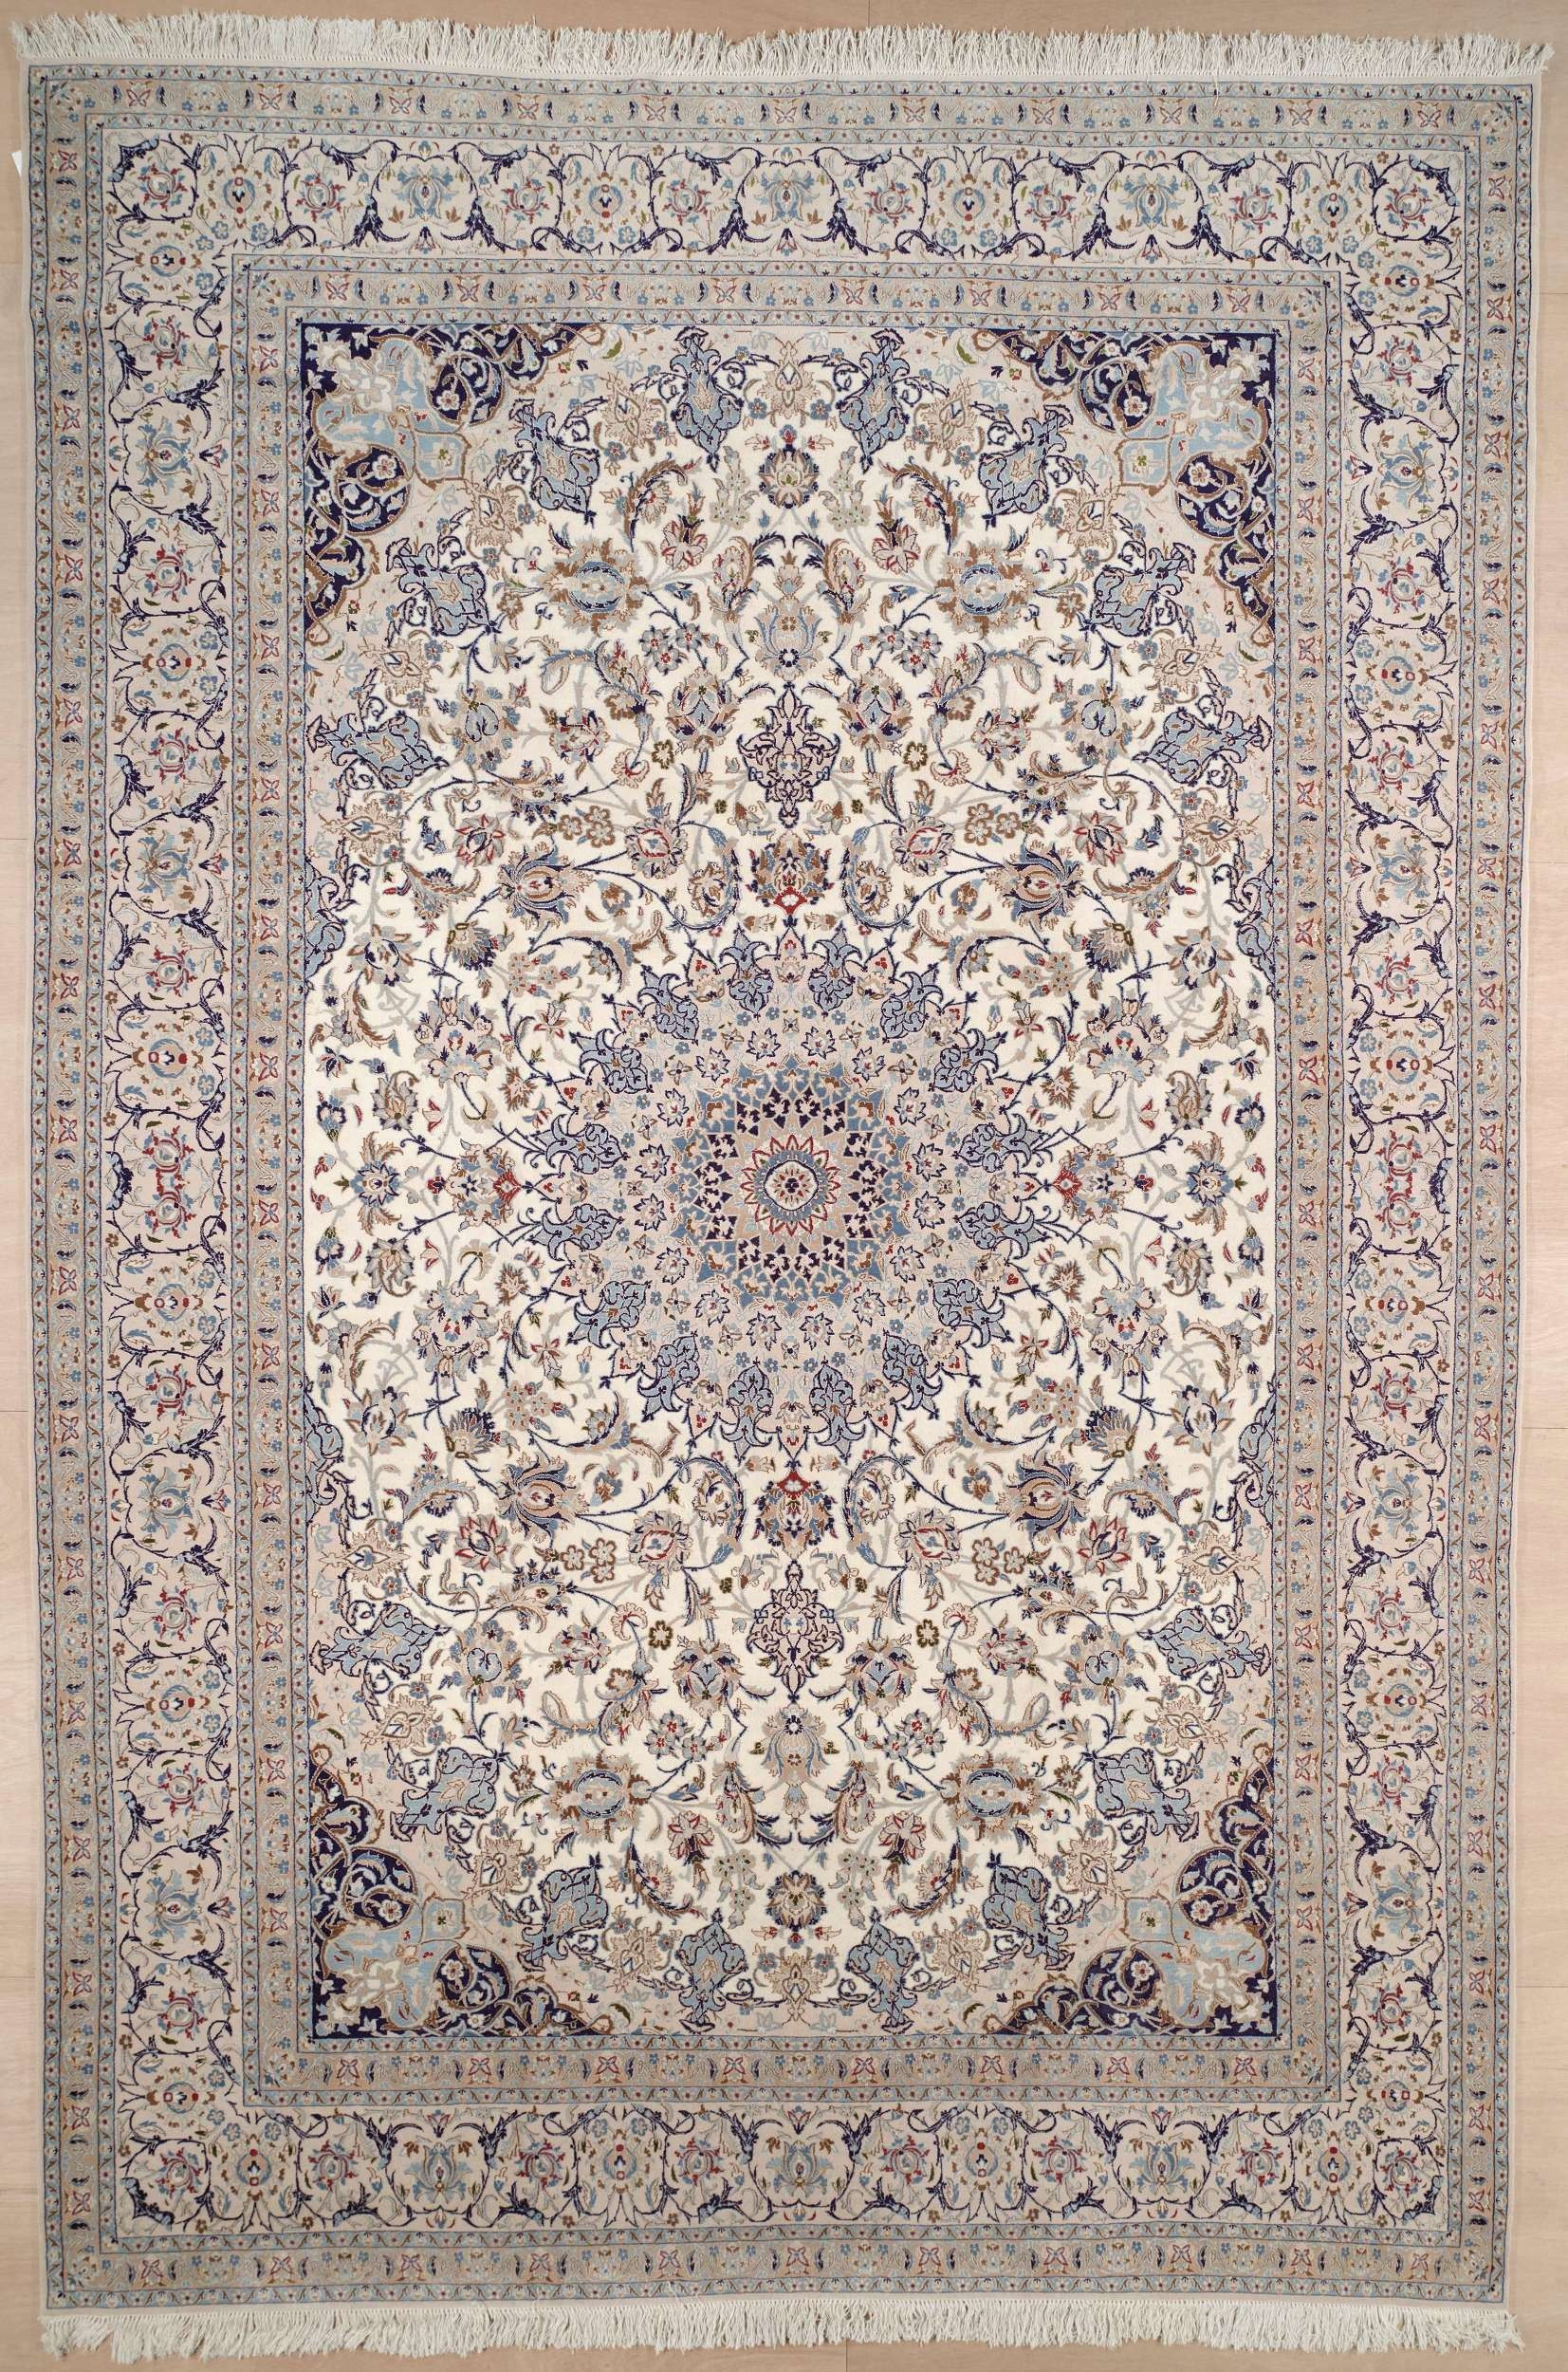 This Beautiful Handmade Knotted Rectangular Rug Is Approximately